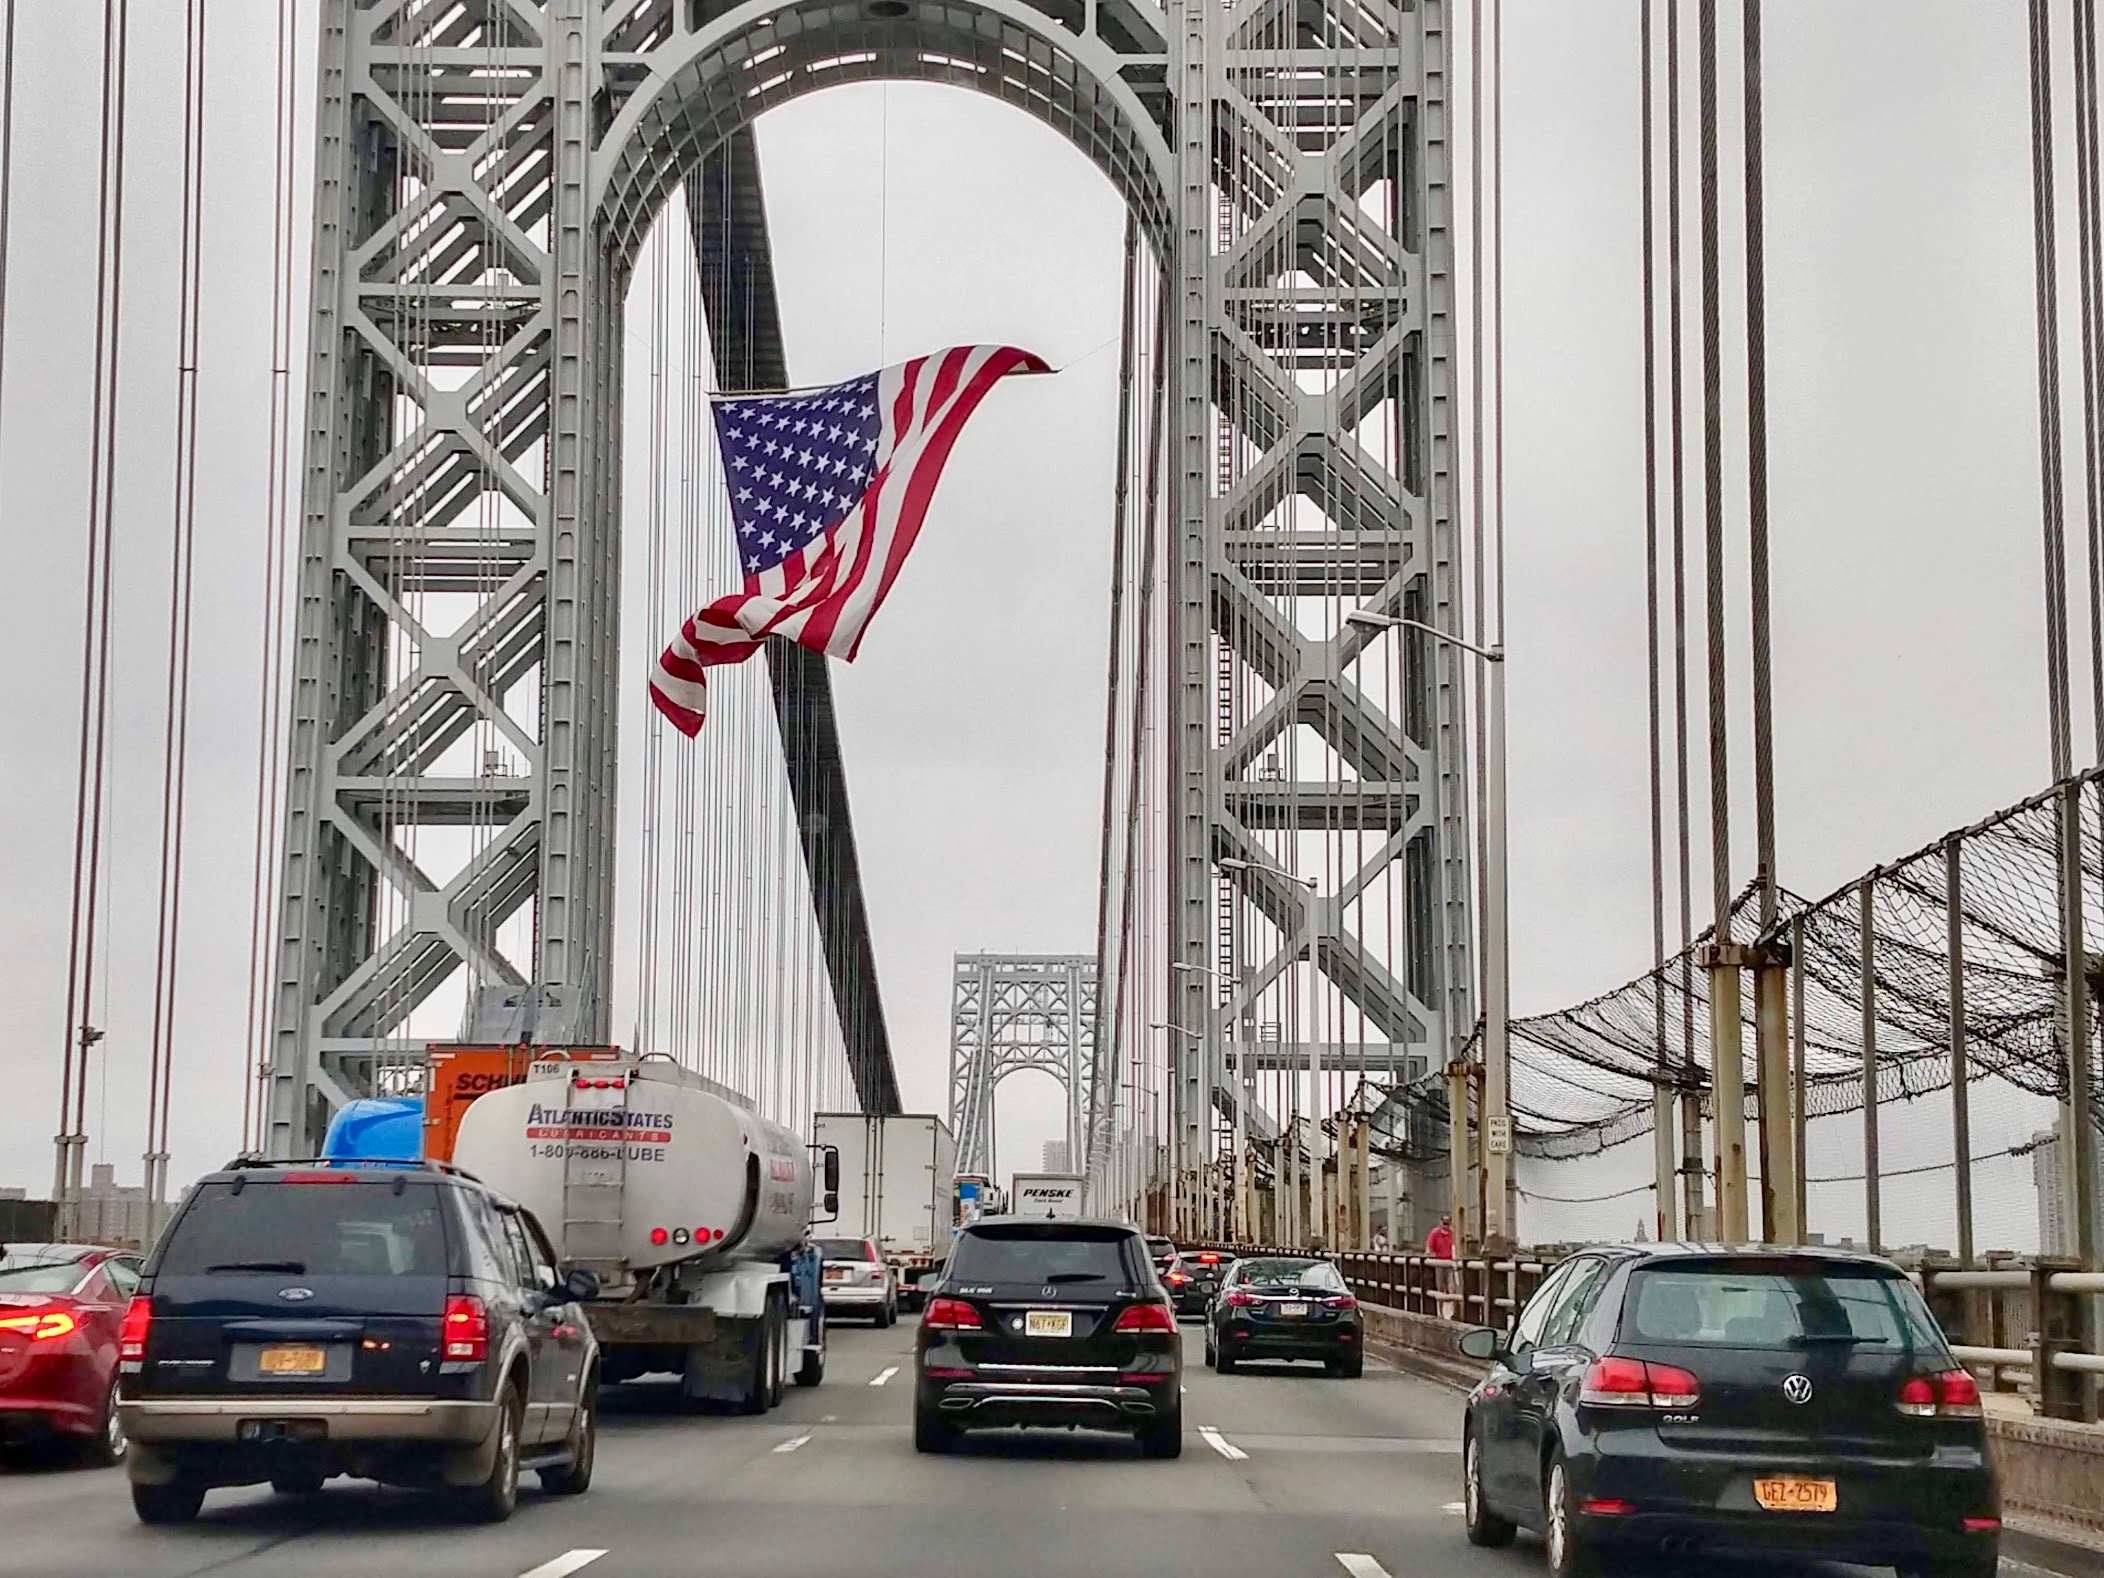 George Washington Bridge - over de Hudson met Amerikaanse vlag - verbinding tussen NJ en NY